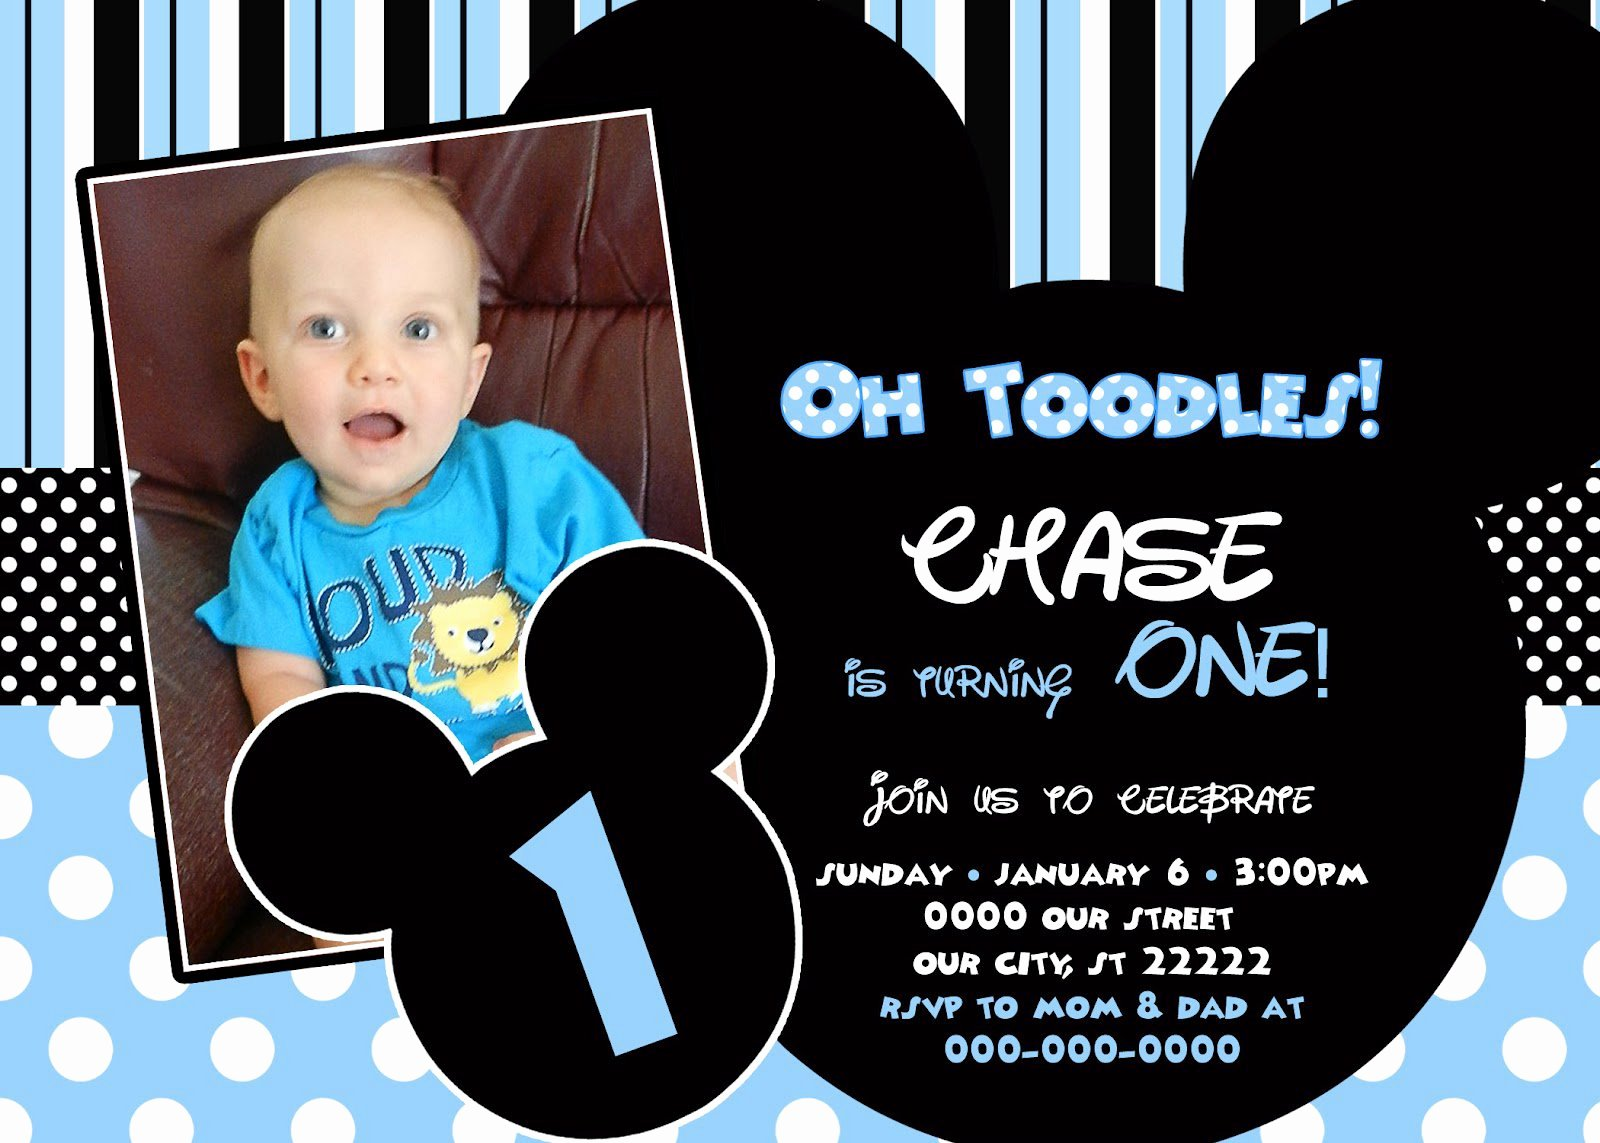 Baby Mickey Mouse Birthday Invitations Luxury Baby Mickey Mouse Birthday Invitations